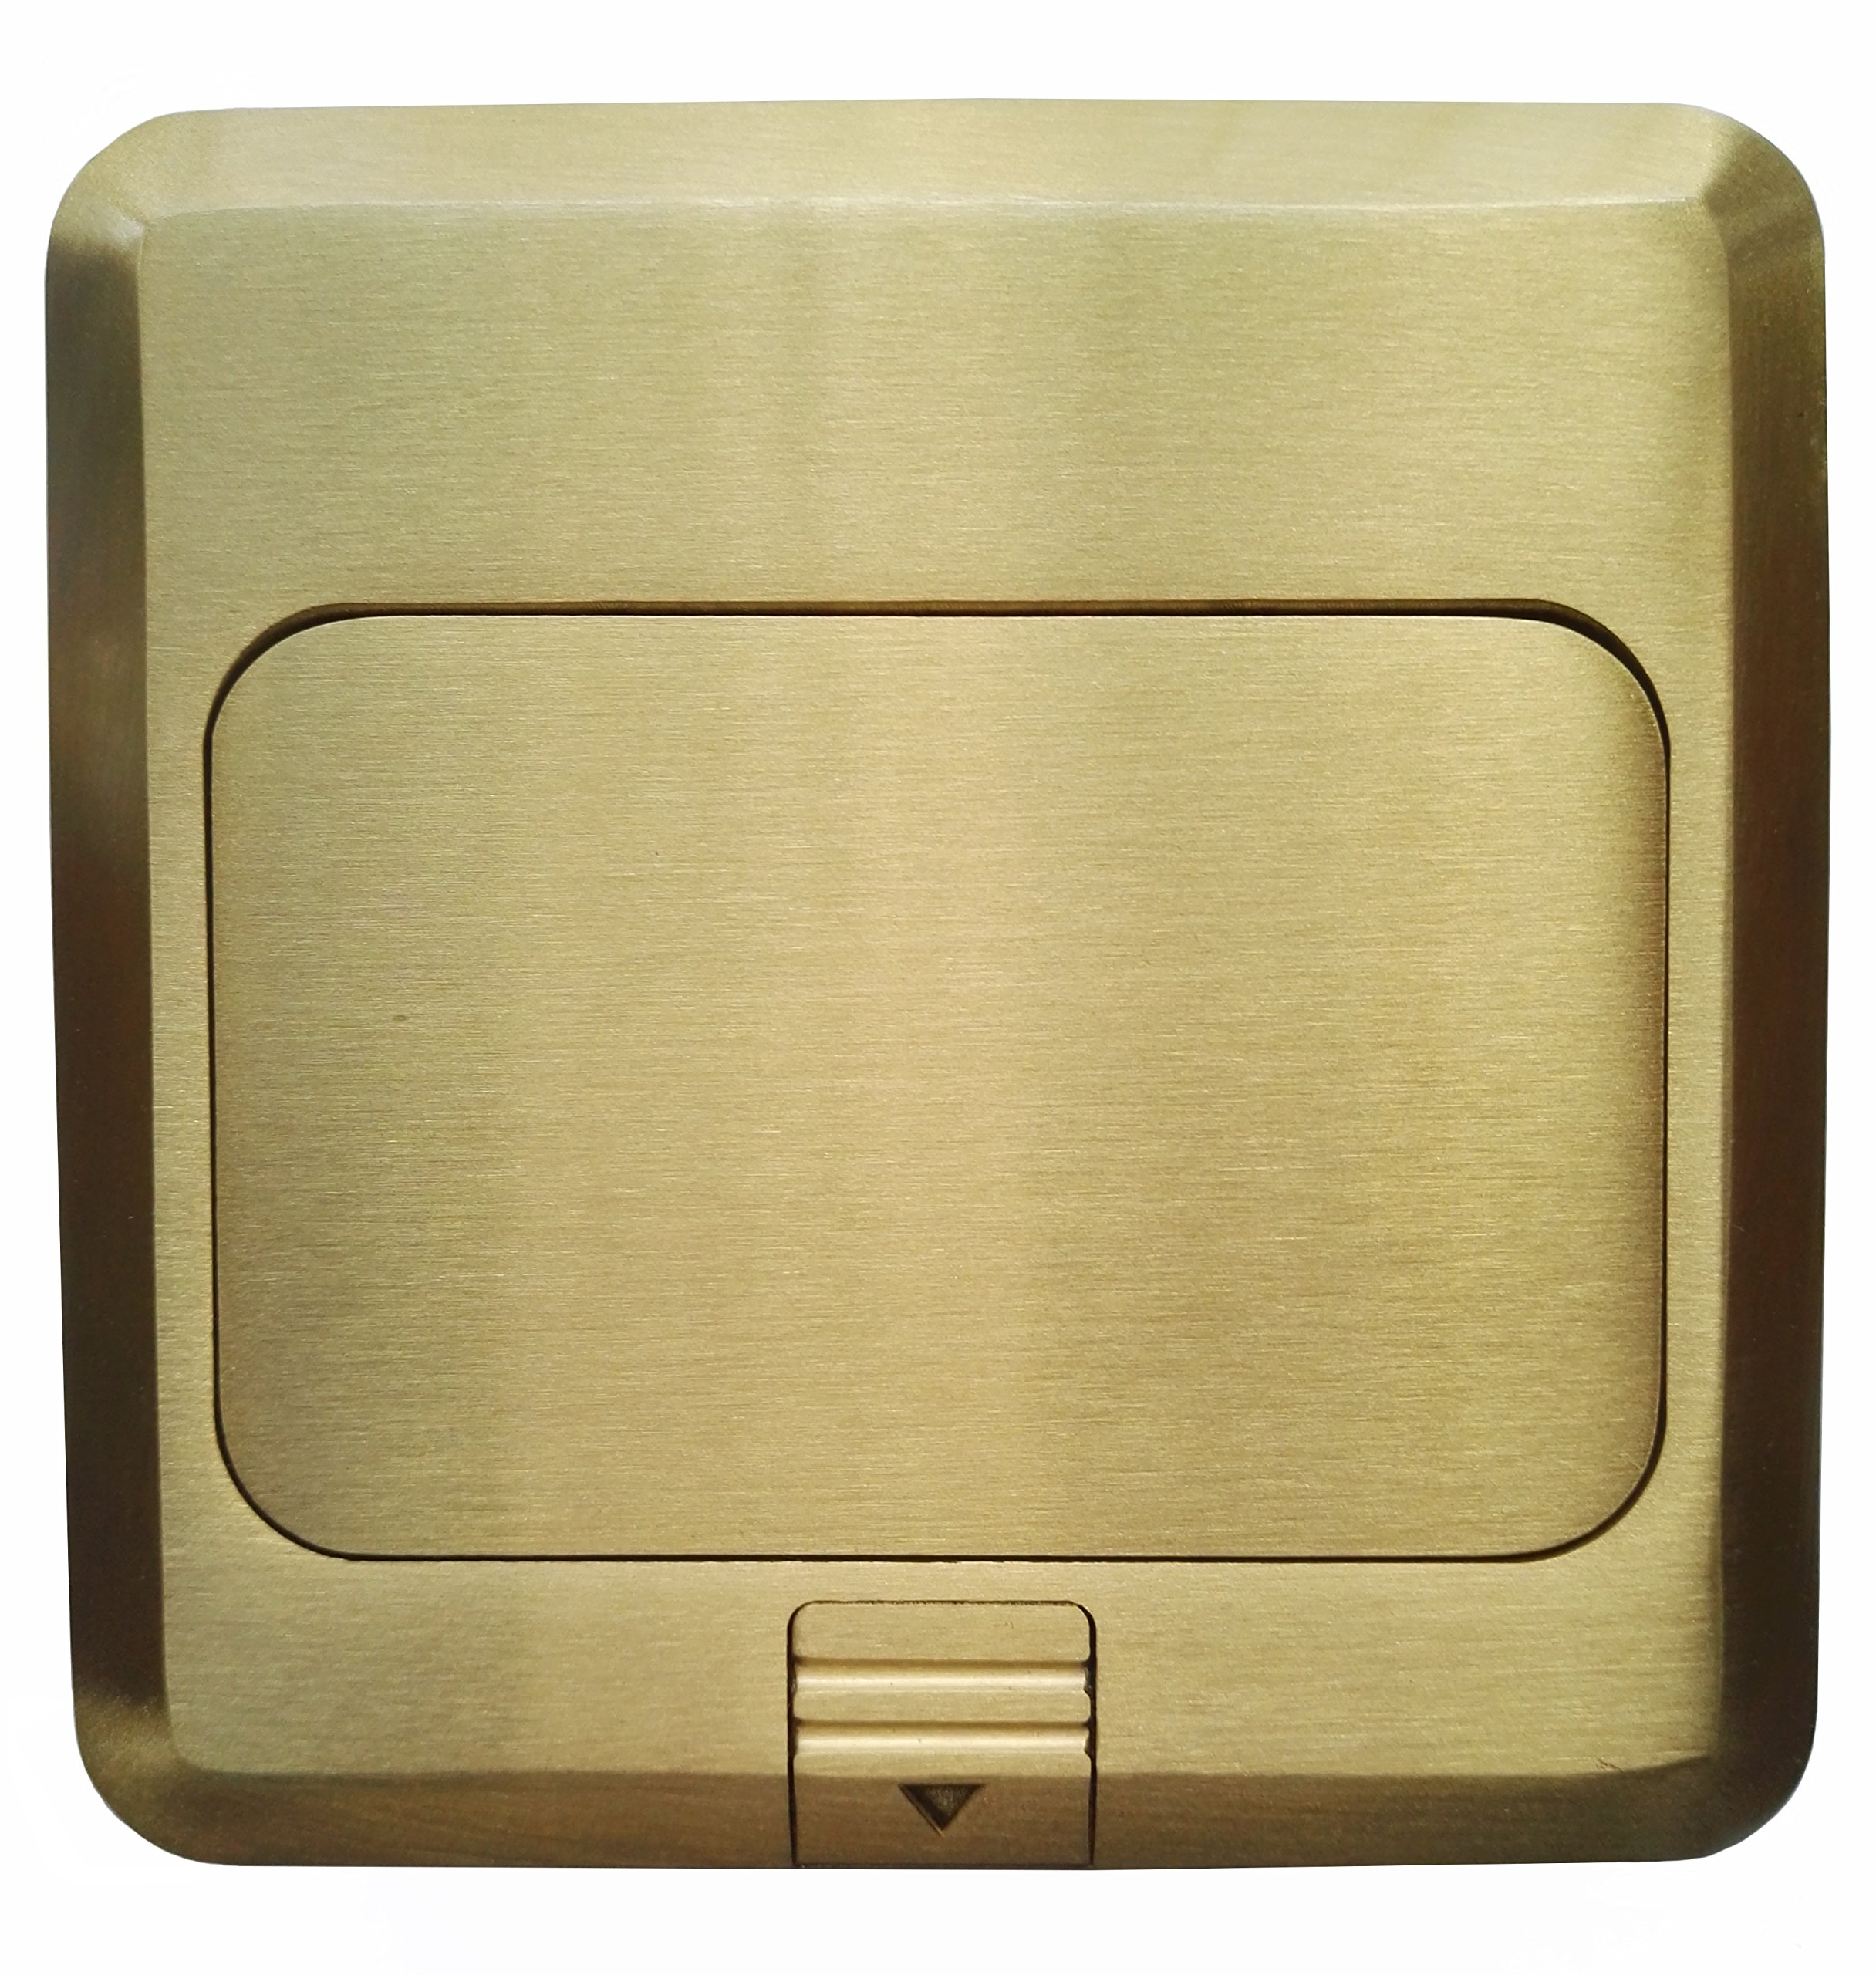 Pop Up Floor Box Countertop Box w/15A with 2 USB Charging Ports Receptacle - Brass by LHFACC (Image #1)